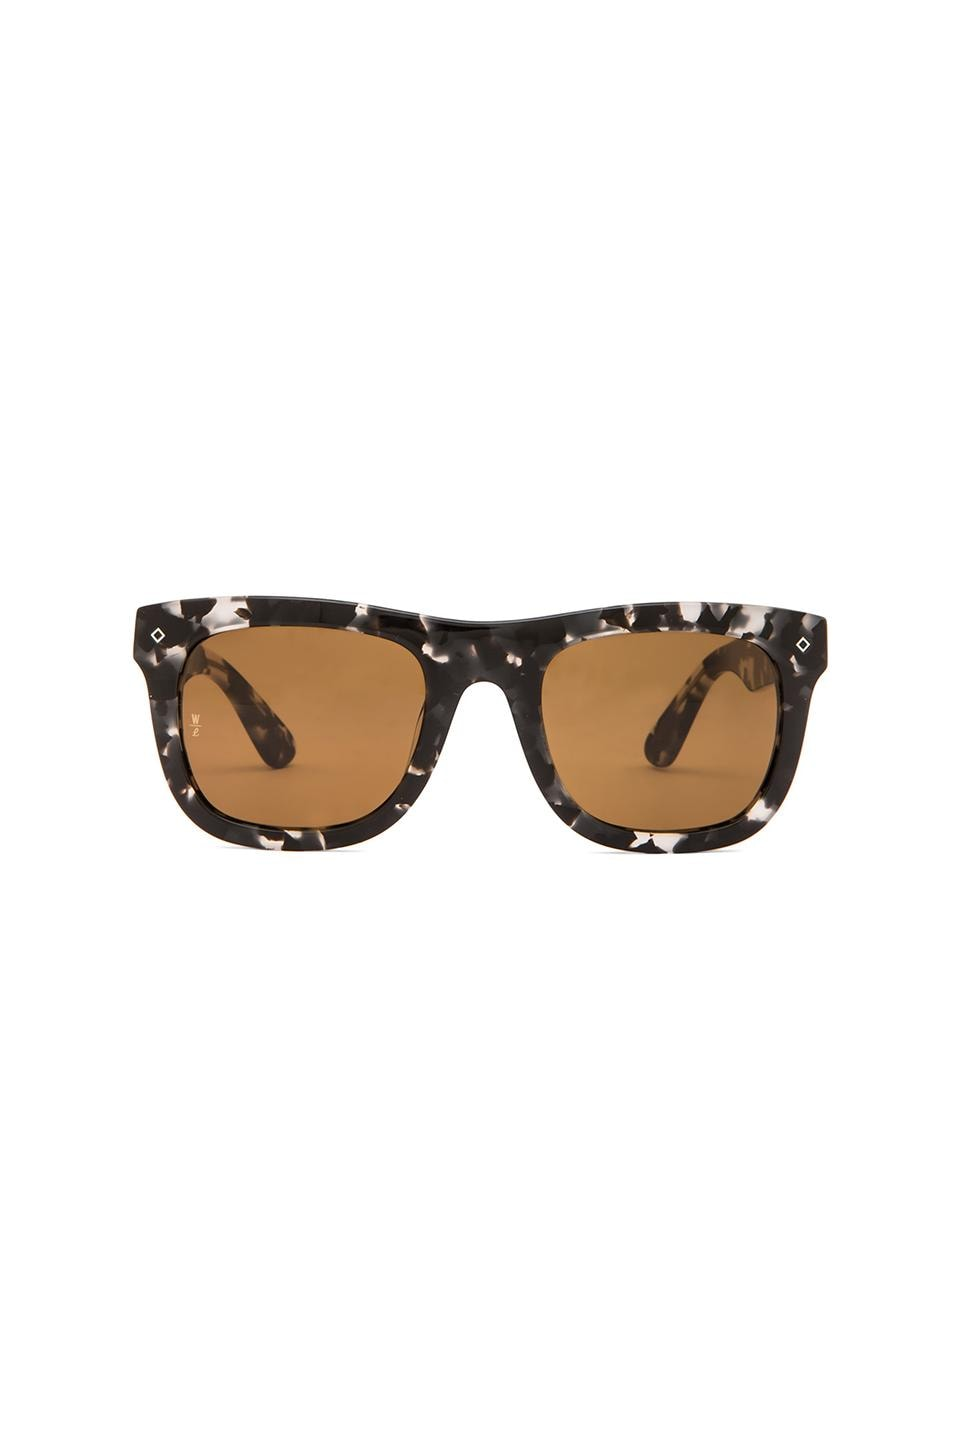 Wonderland Palms in Black Tortoise & Gray